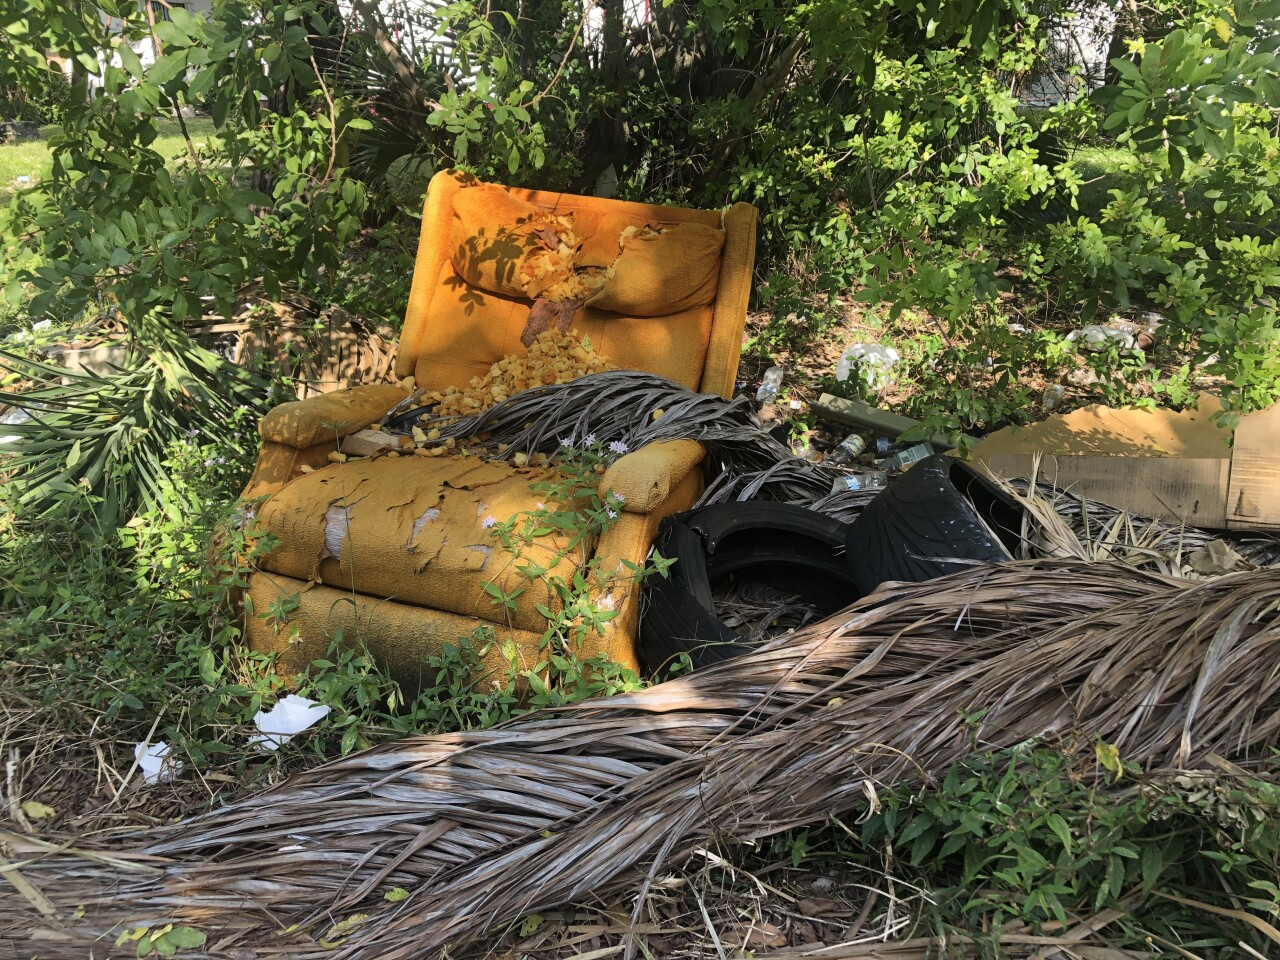 Tattered sofa chair illegally dumped in West Palm Beach